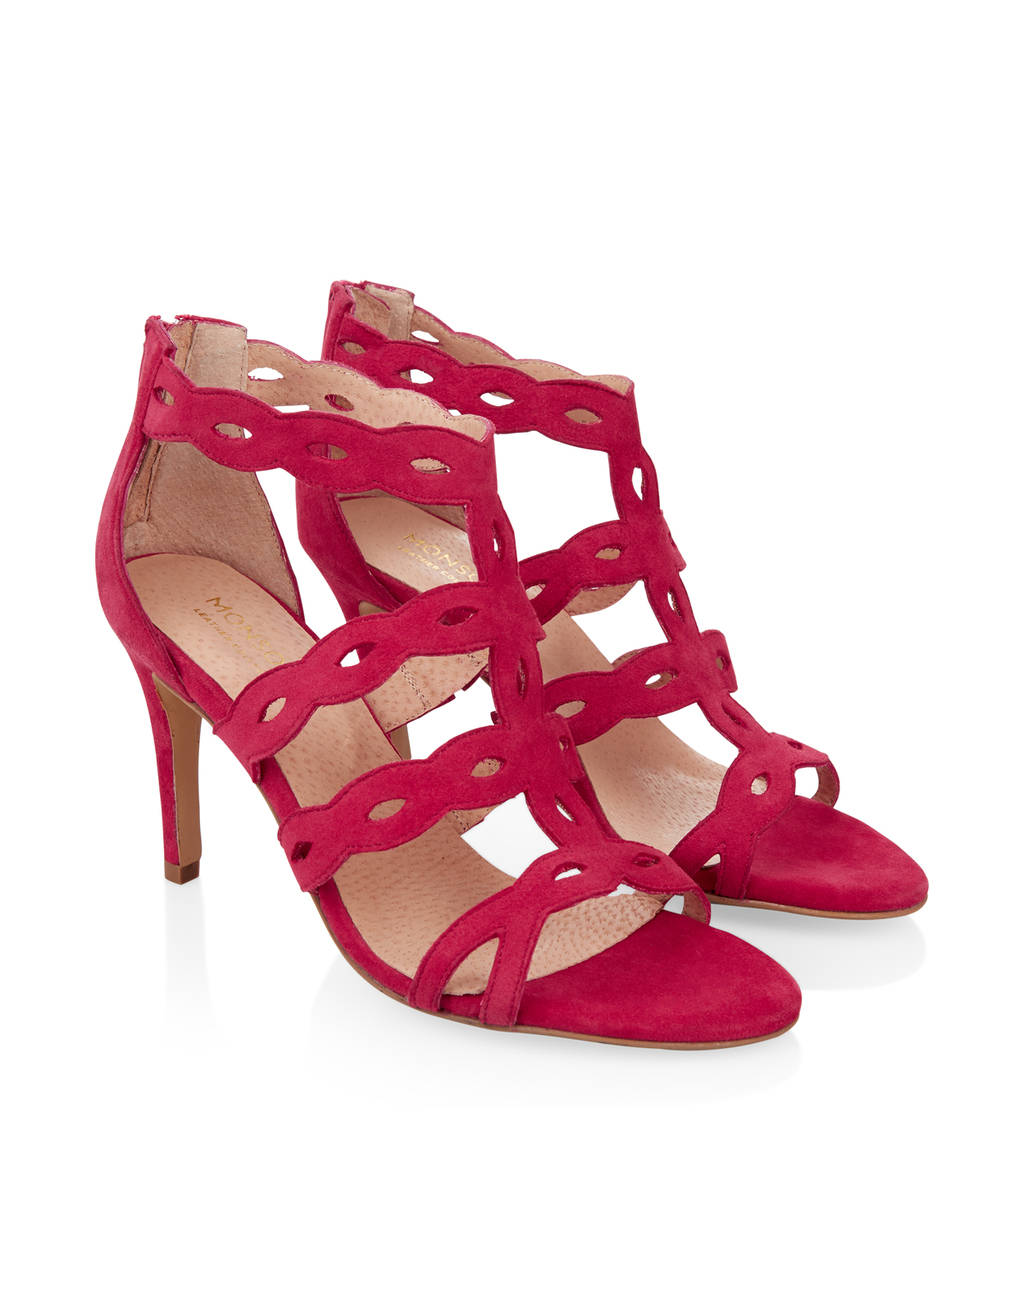 Lyra Lasercut Heeled Sandal - predominant colour: true red; occasions: evening, occasion; material: suede; heel height: high; ankle detail: ankle strap; heel: stiletto; toe: open toe/peeptoe; style: strappy; finish: plain; pattern: plain; season: s/s 2016; wardrobe: event